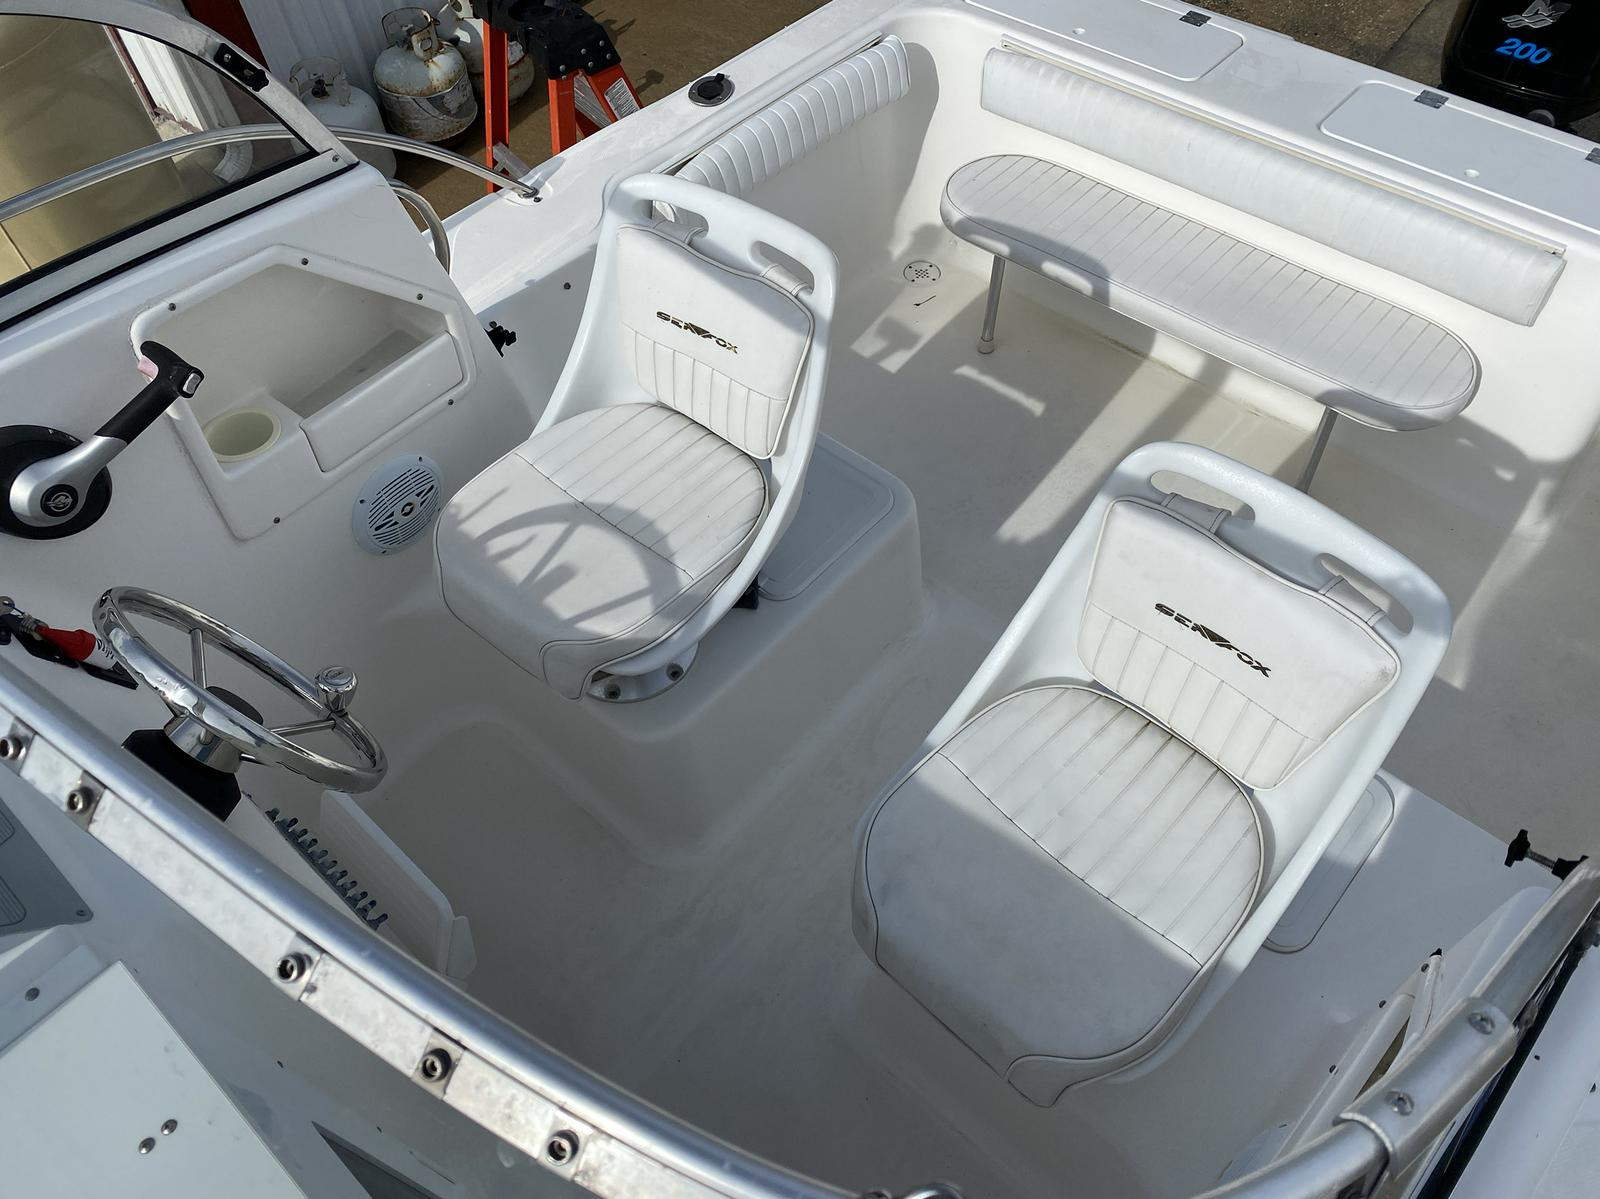 2006 Sea Fox boat for sale, model of the boat is Around 216 & Image # 7 of 13